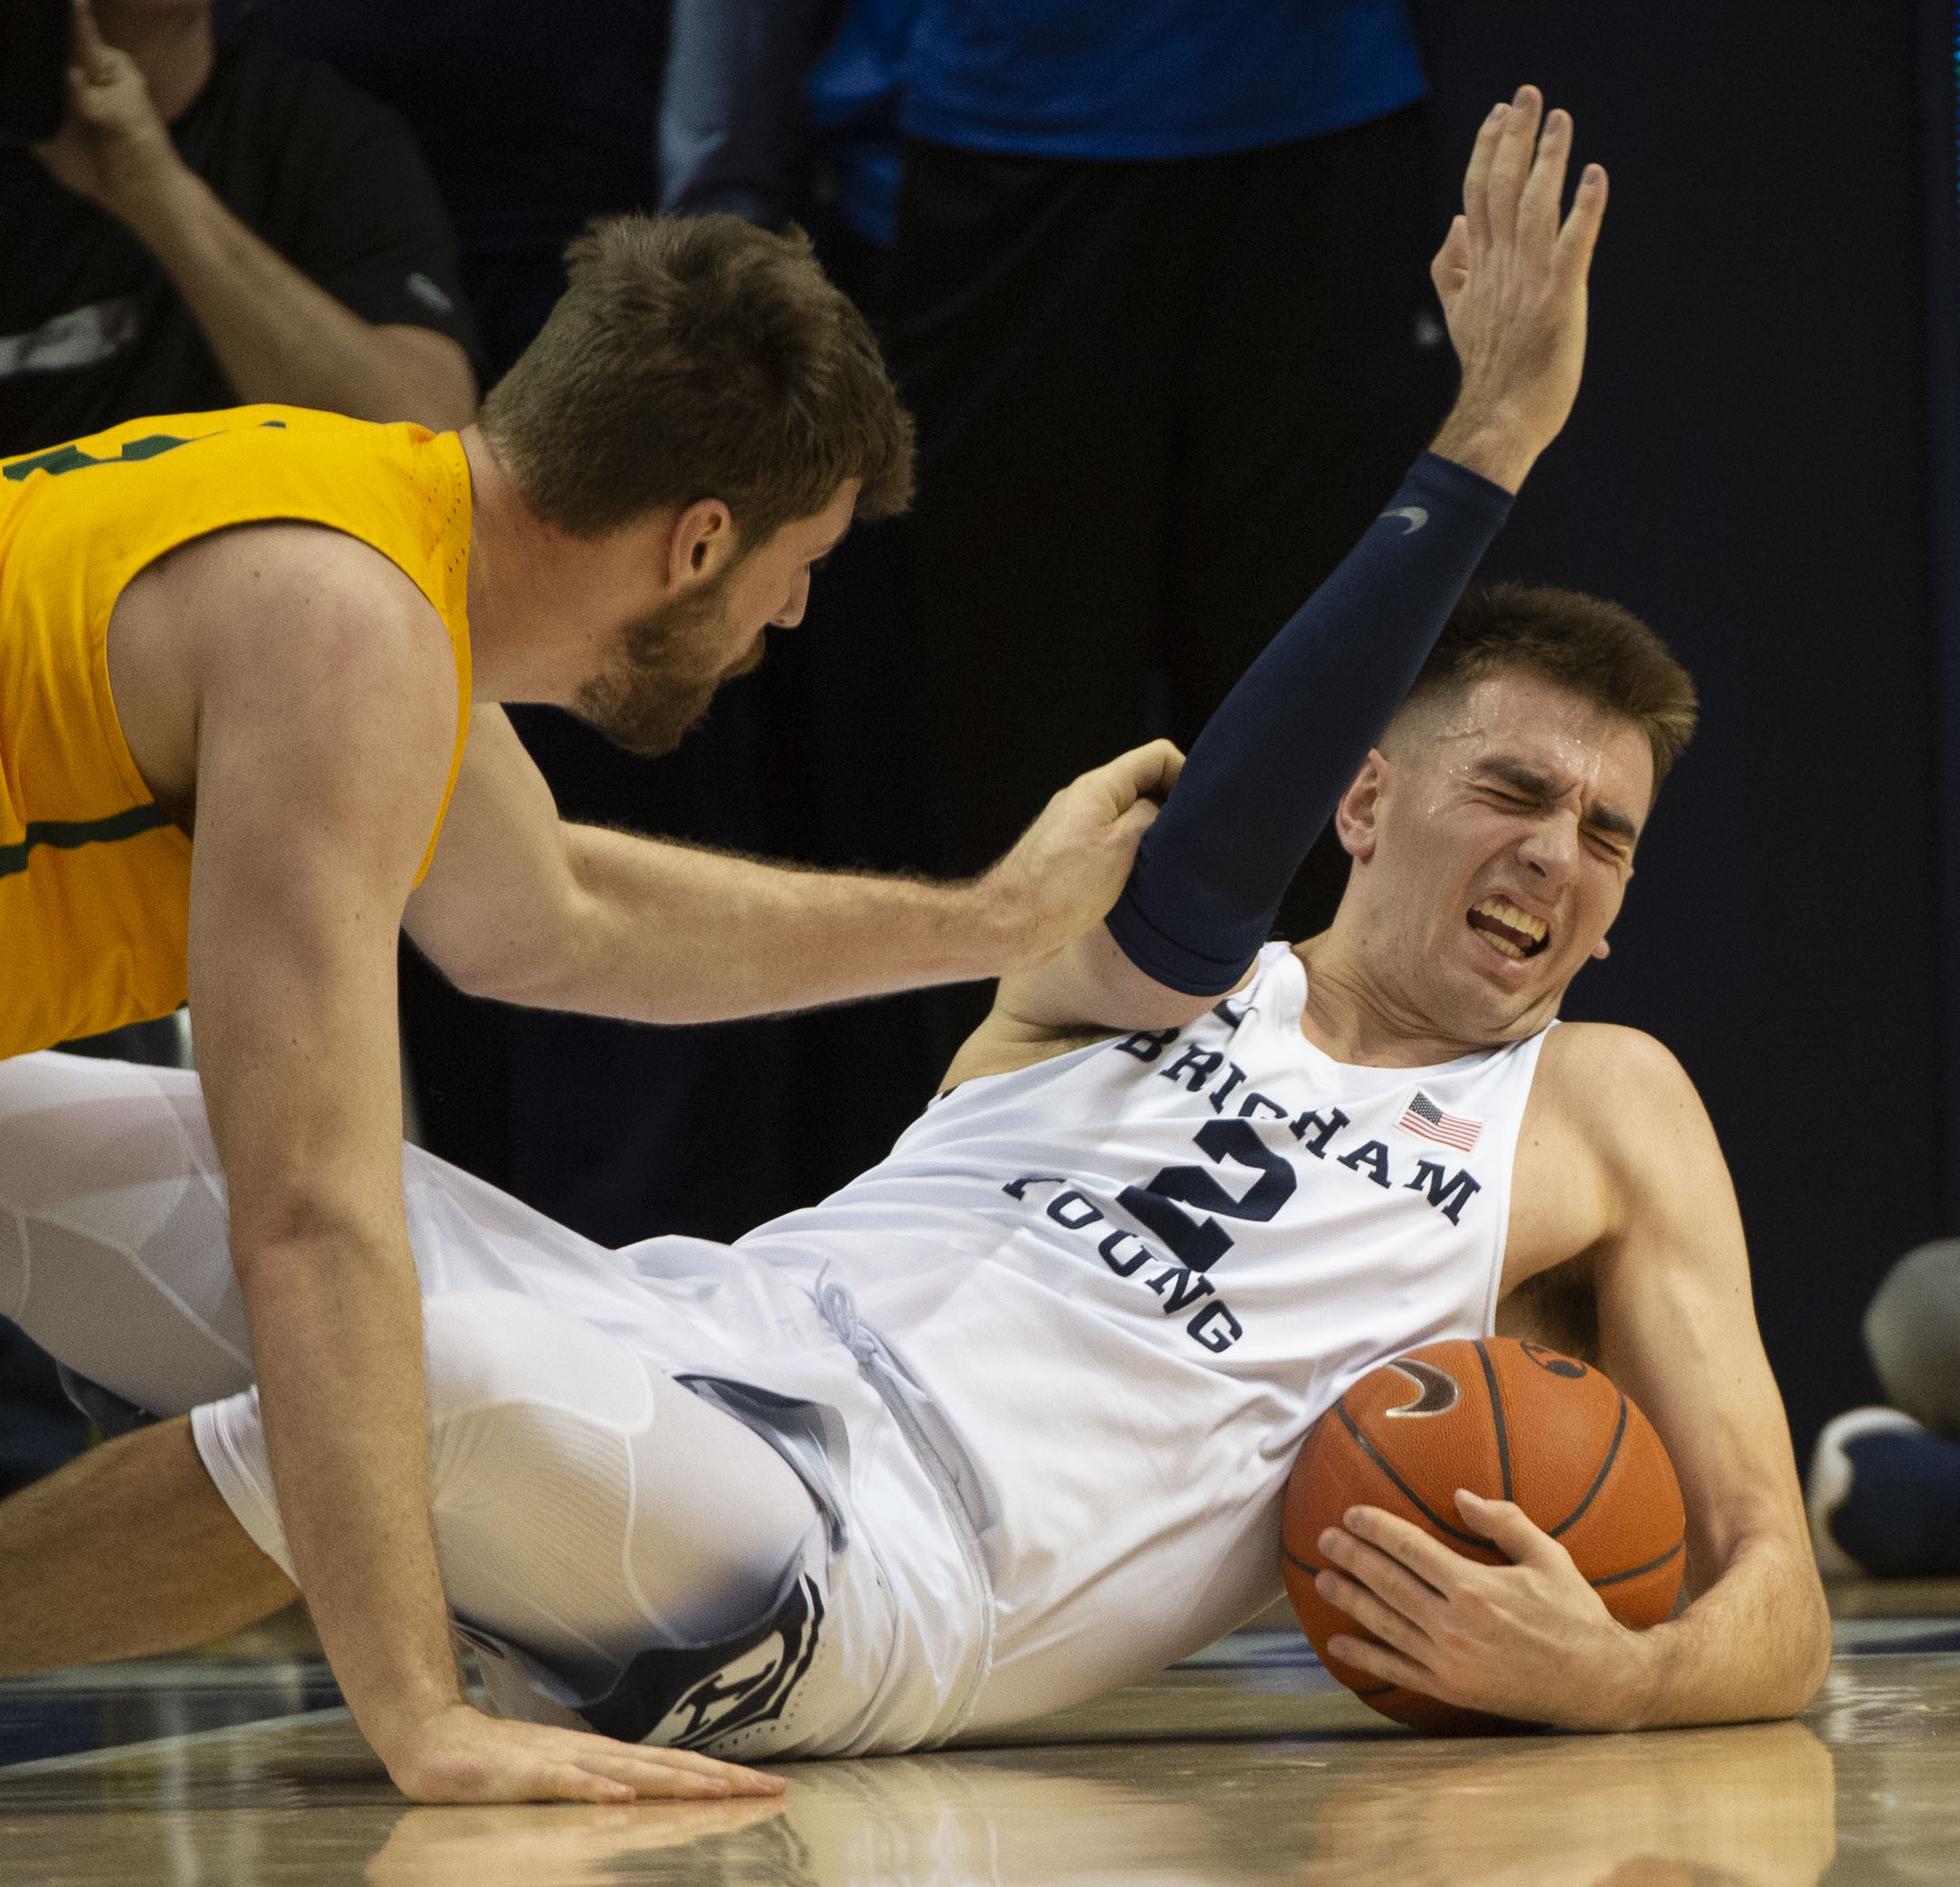 (Rick Egan  |  The Salt Lake Tribune)      San Francisco Dons center Jimbo Lull (5) goes for a loose ball along with Brigham Young Cougars guard Zac Seljaas (2), in WCC basketball action at the Marriott Center, Thursday, February 21, 2018.